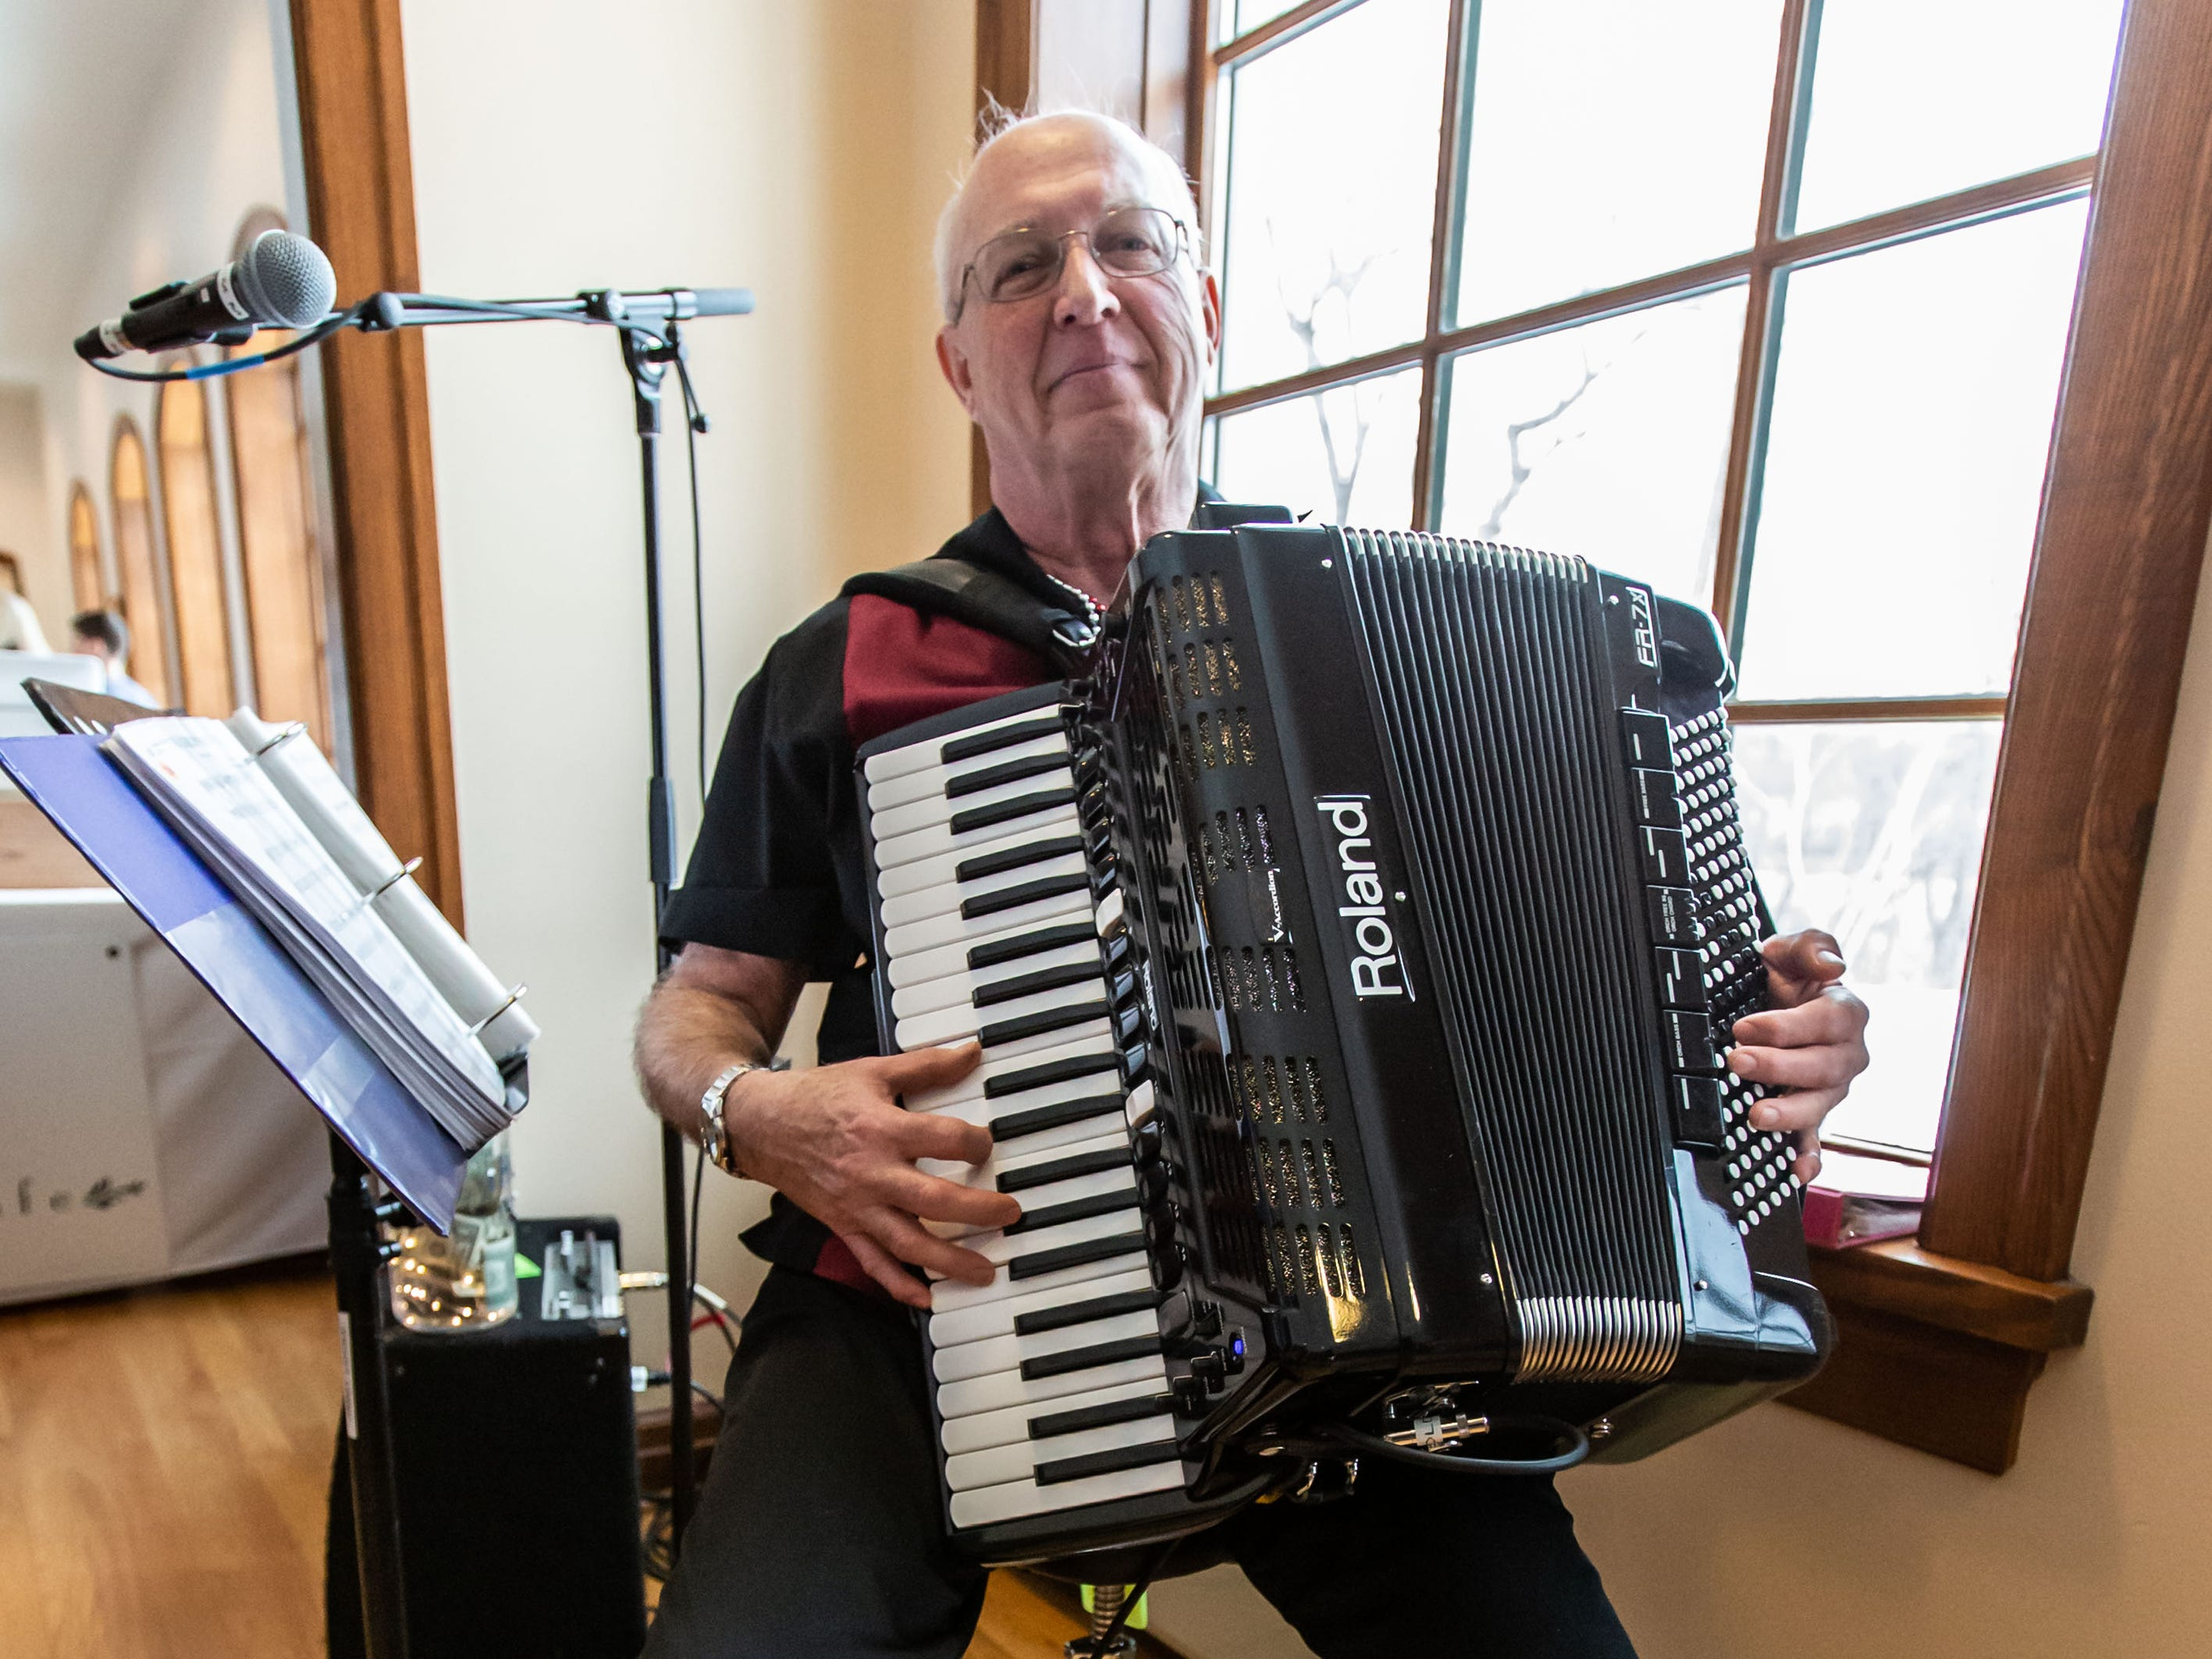 Musician Jimmy Locke of Greendale performs for guests during the Wisconsin Bakers Association's Paczki Preview Party at the Polish Center of Wisconsin in Franklin on Sunday, Feb. 24, 2019. The event showcases some of the best paczki from the area.